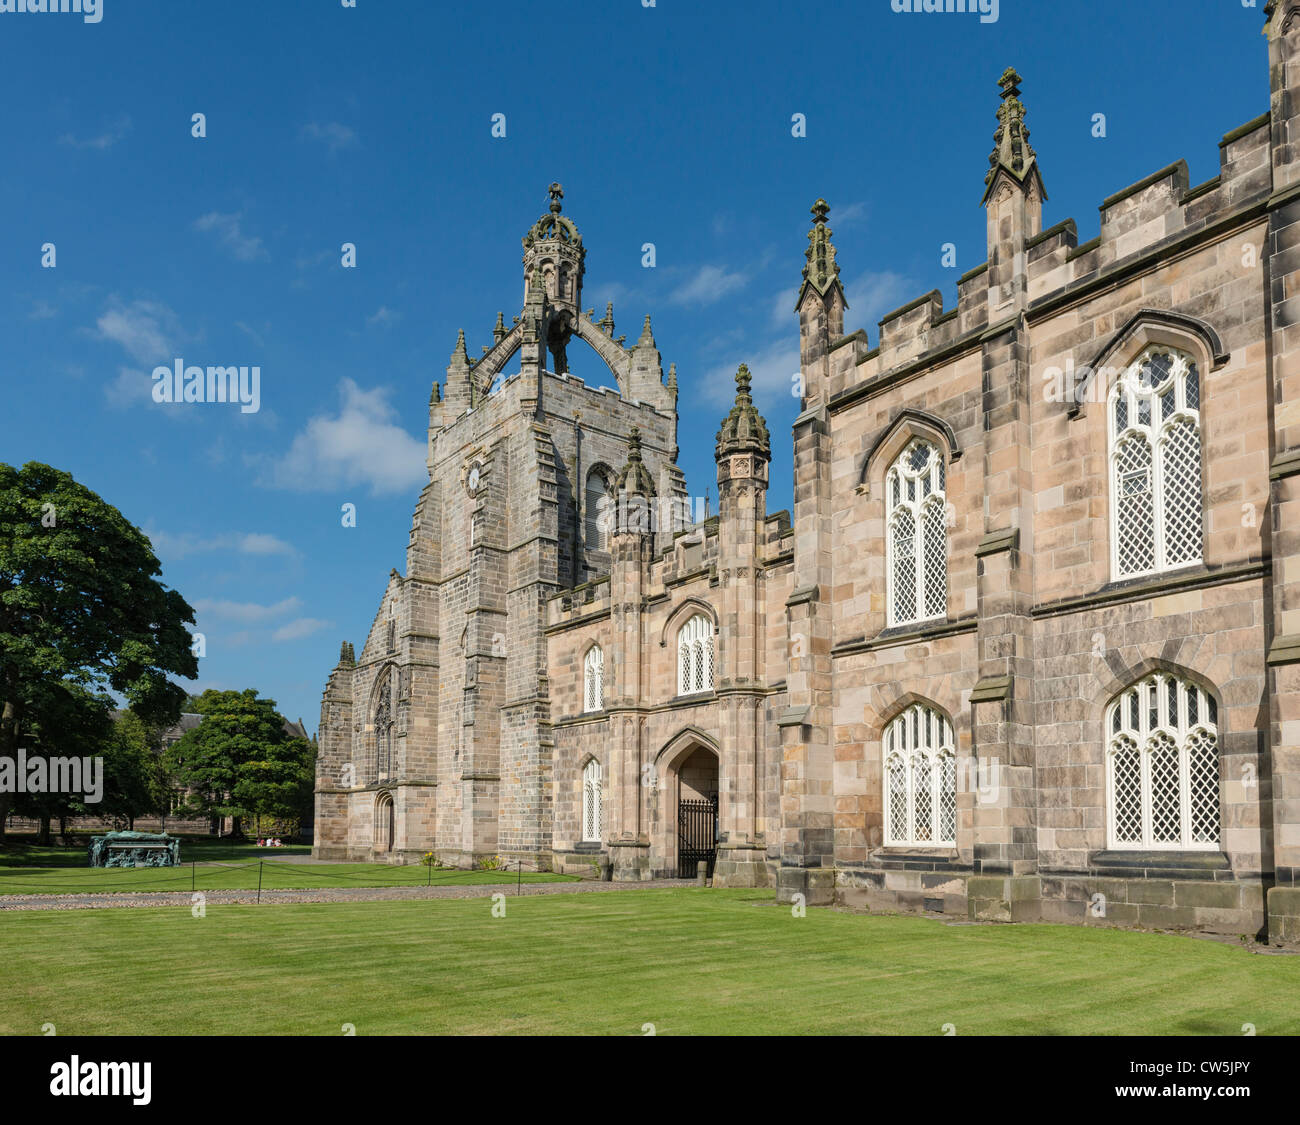 Kings College Aberdeen - Stock Image